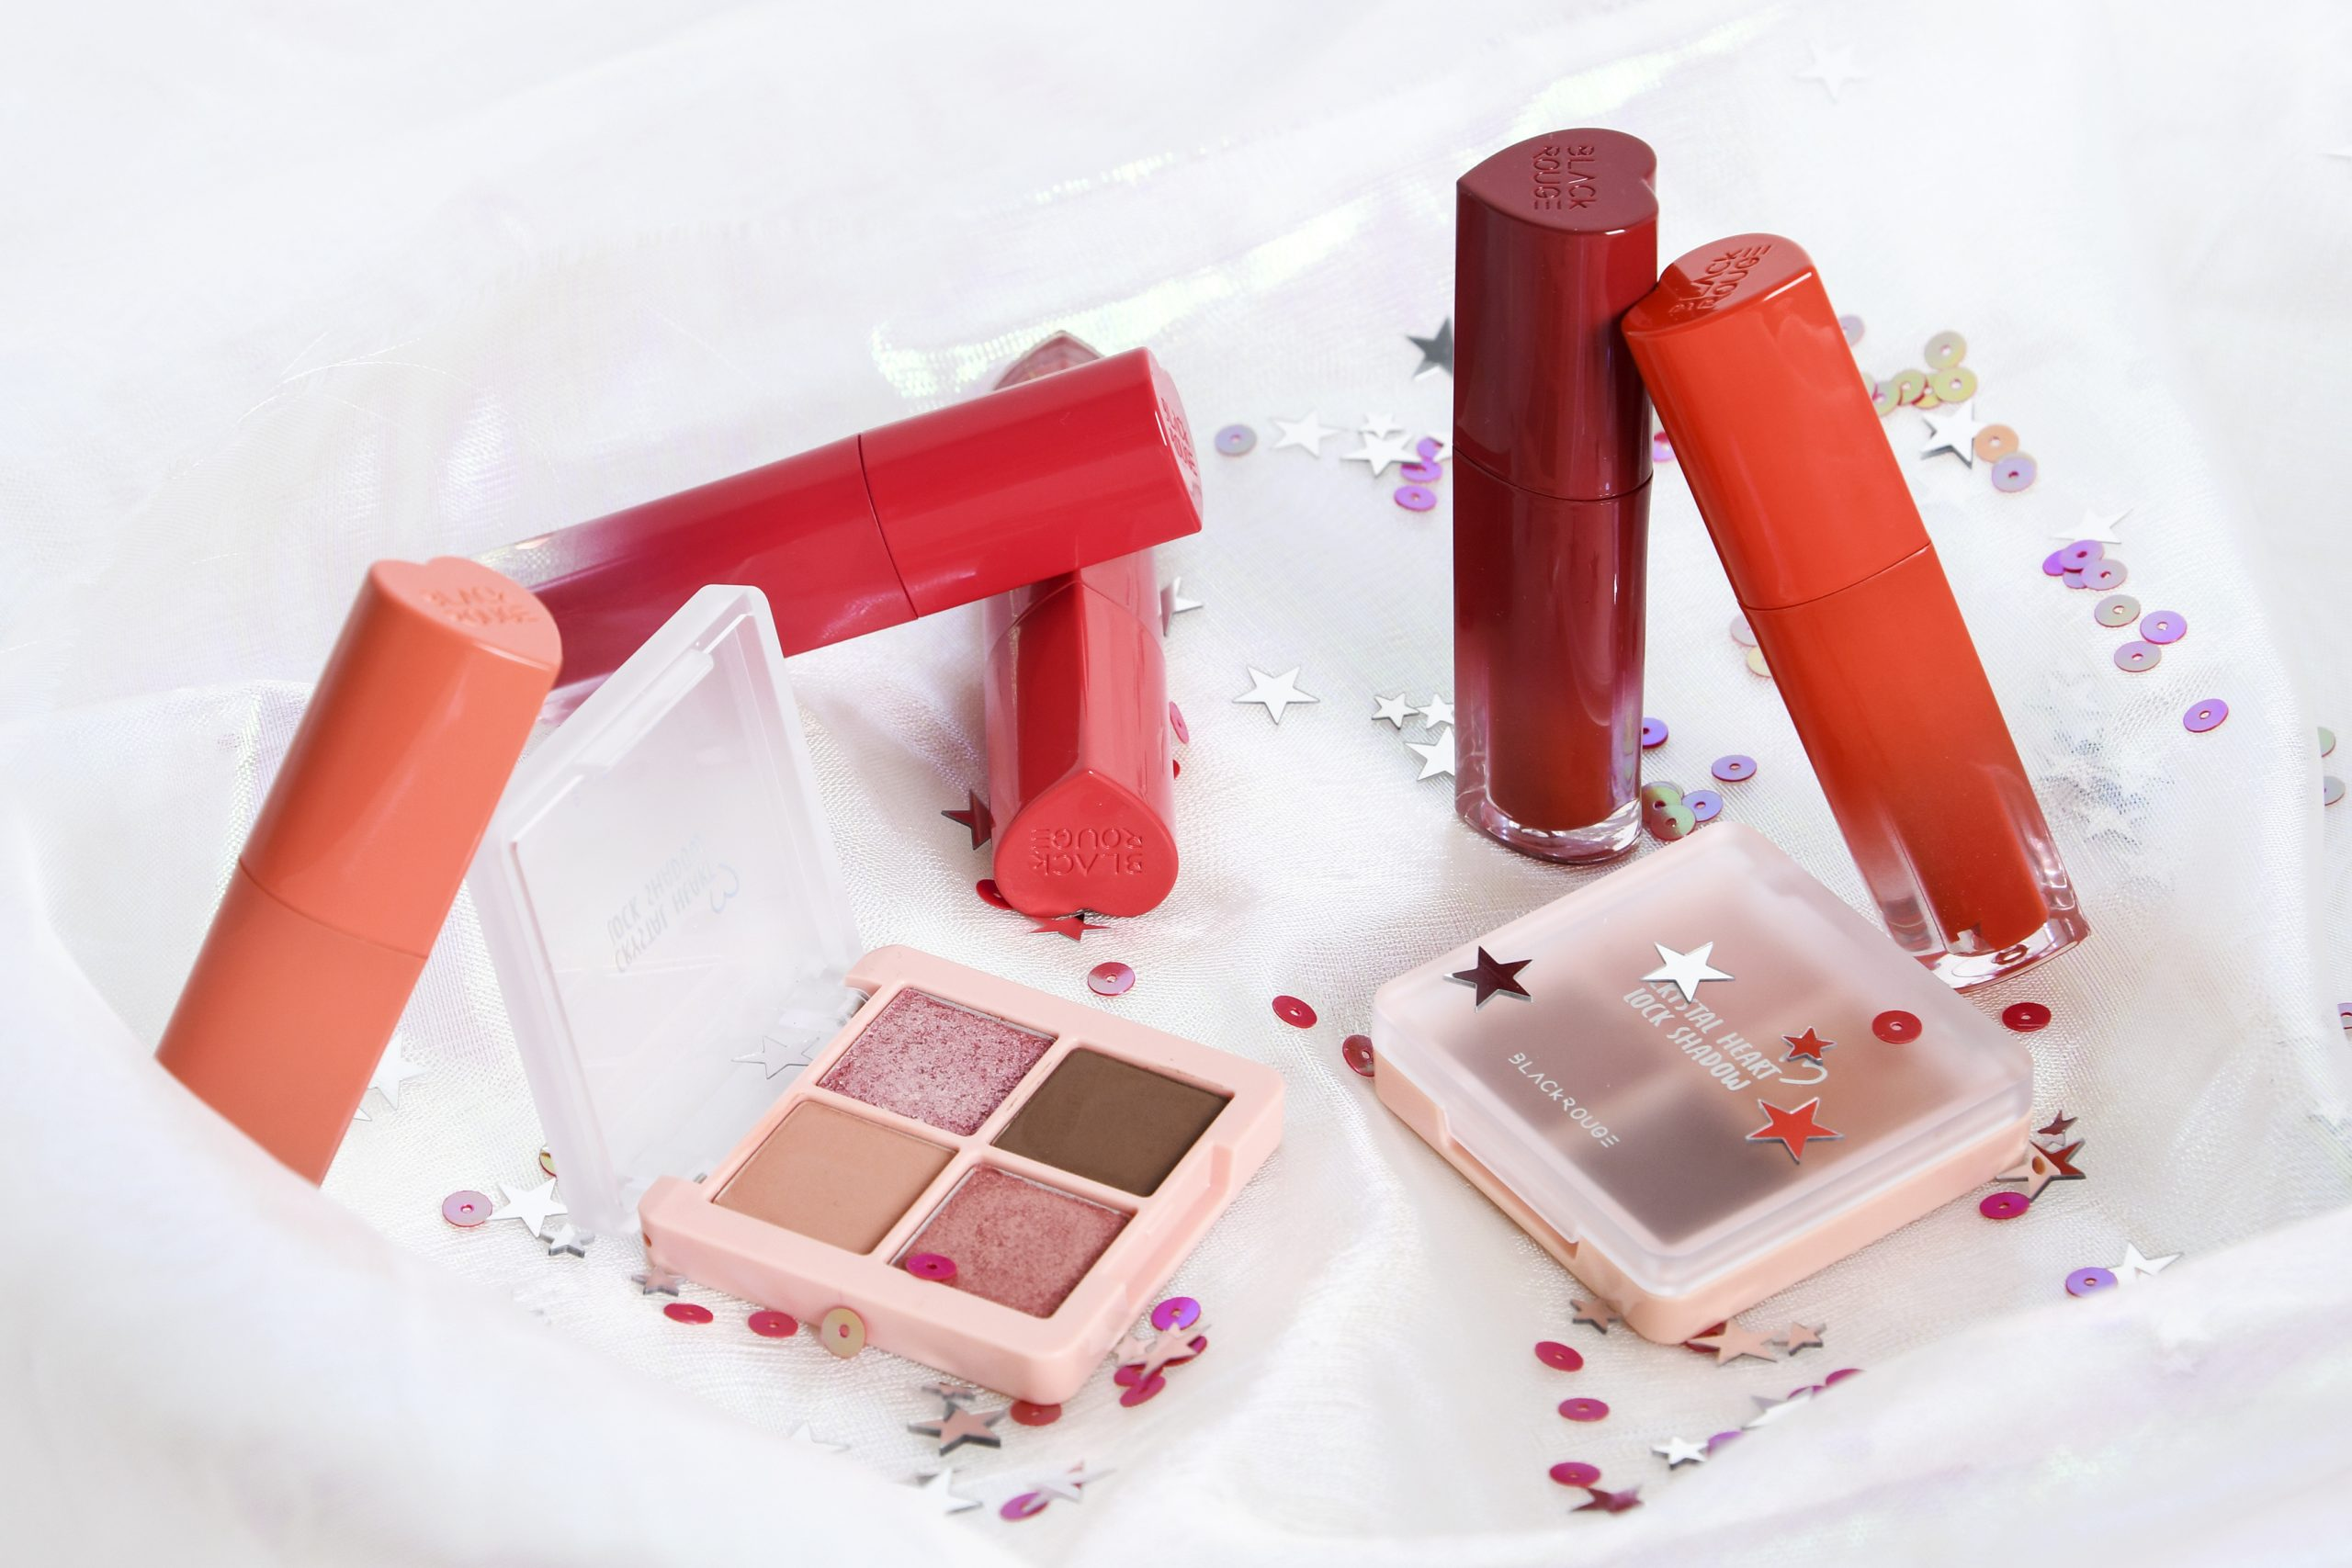 Getting Ready for Valentine's with BLACK ROUGE's Color Lock Heart Tint & Crystal Heart Lock Shadow – THE YESSTYLIST - Asian Fashion Blog